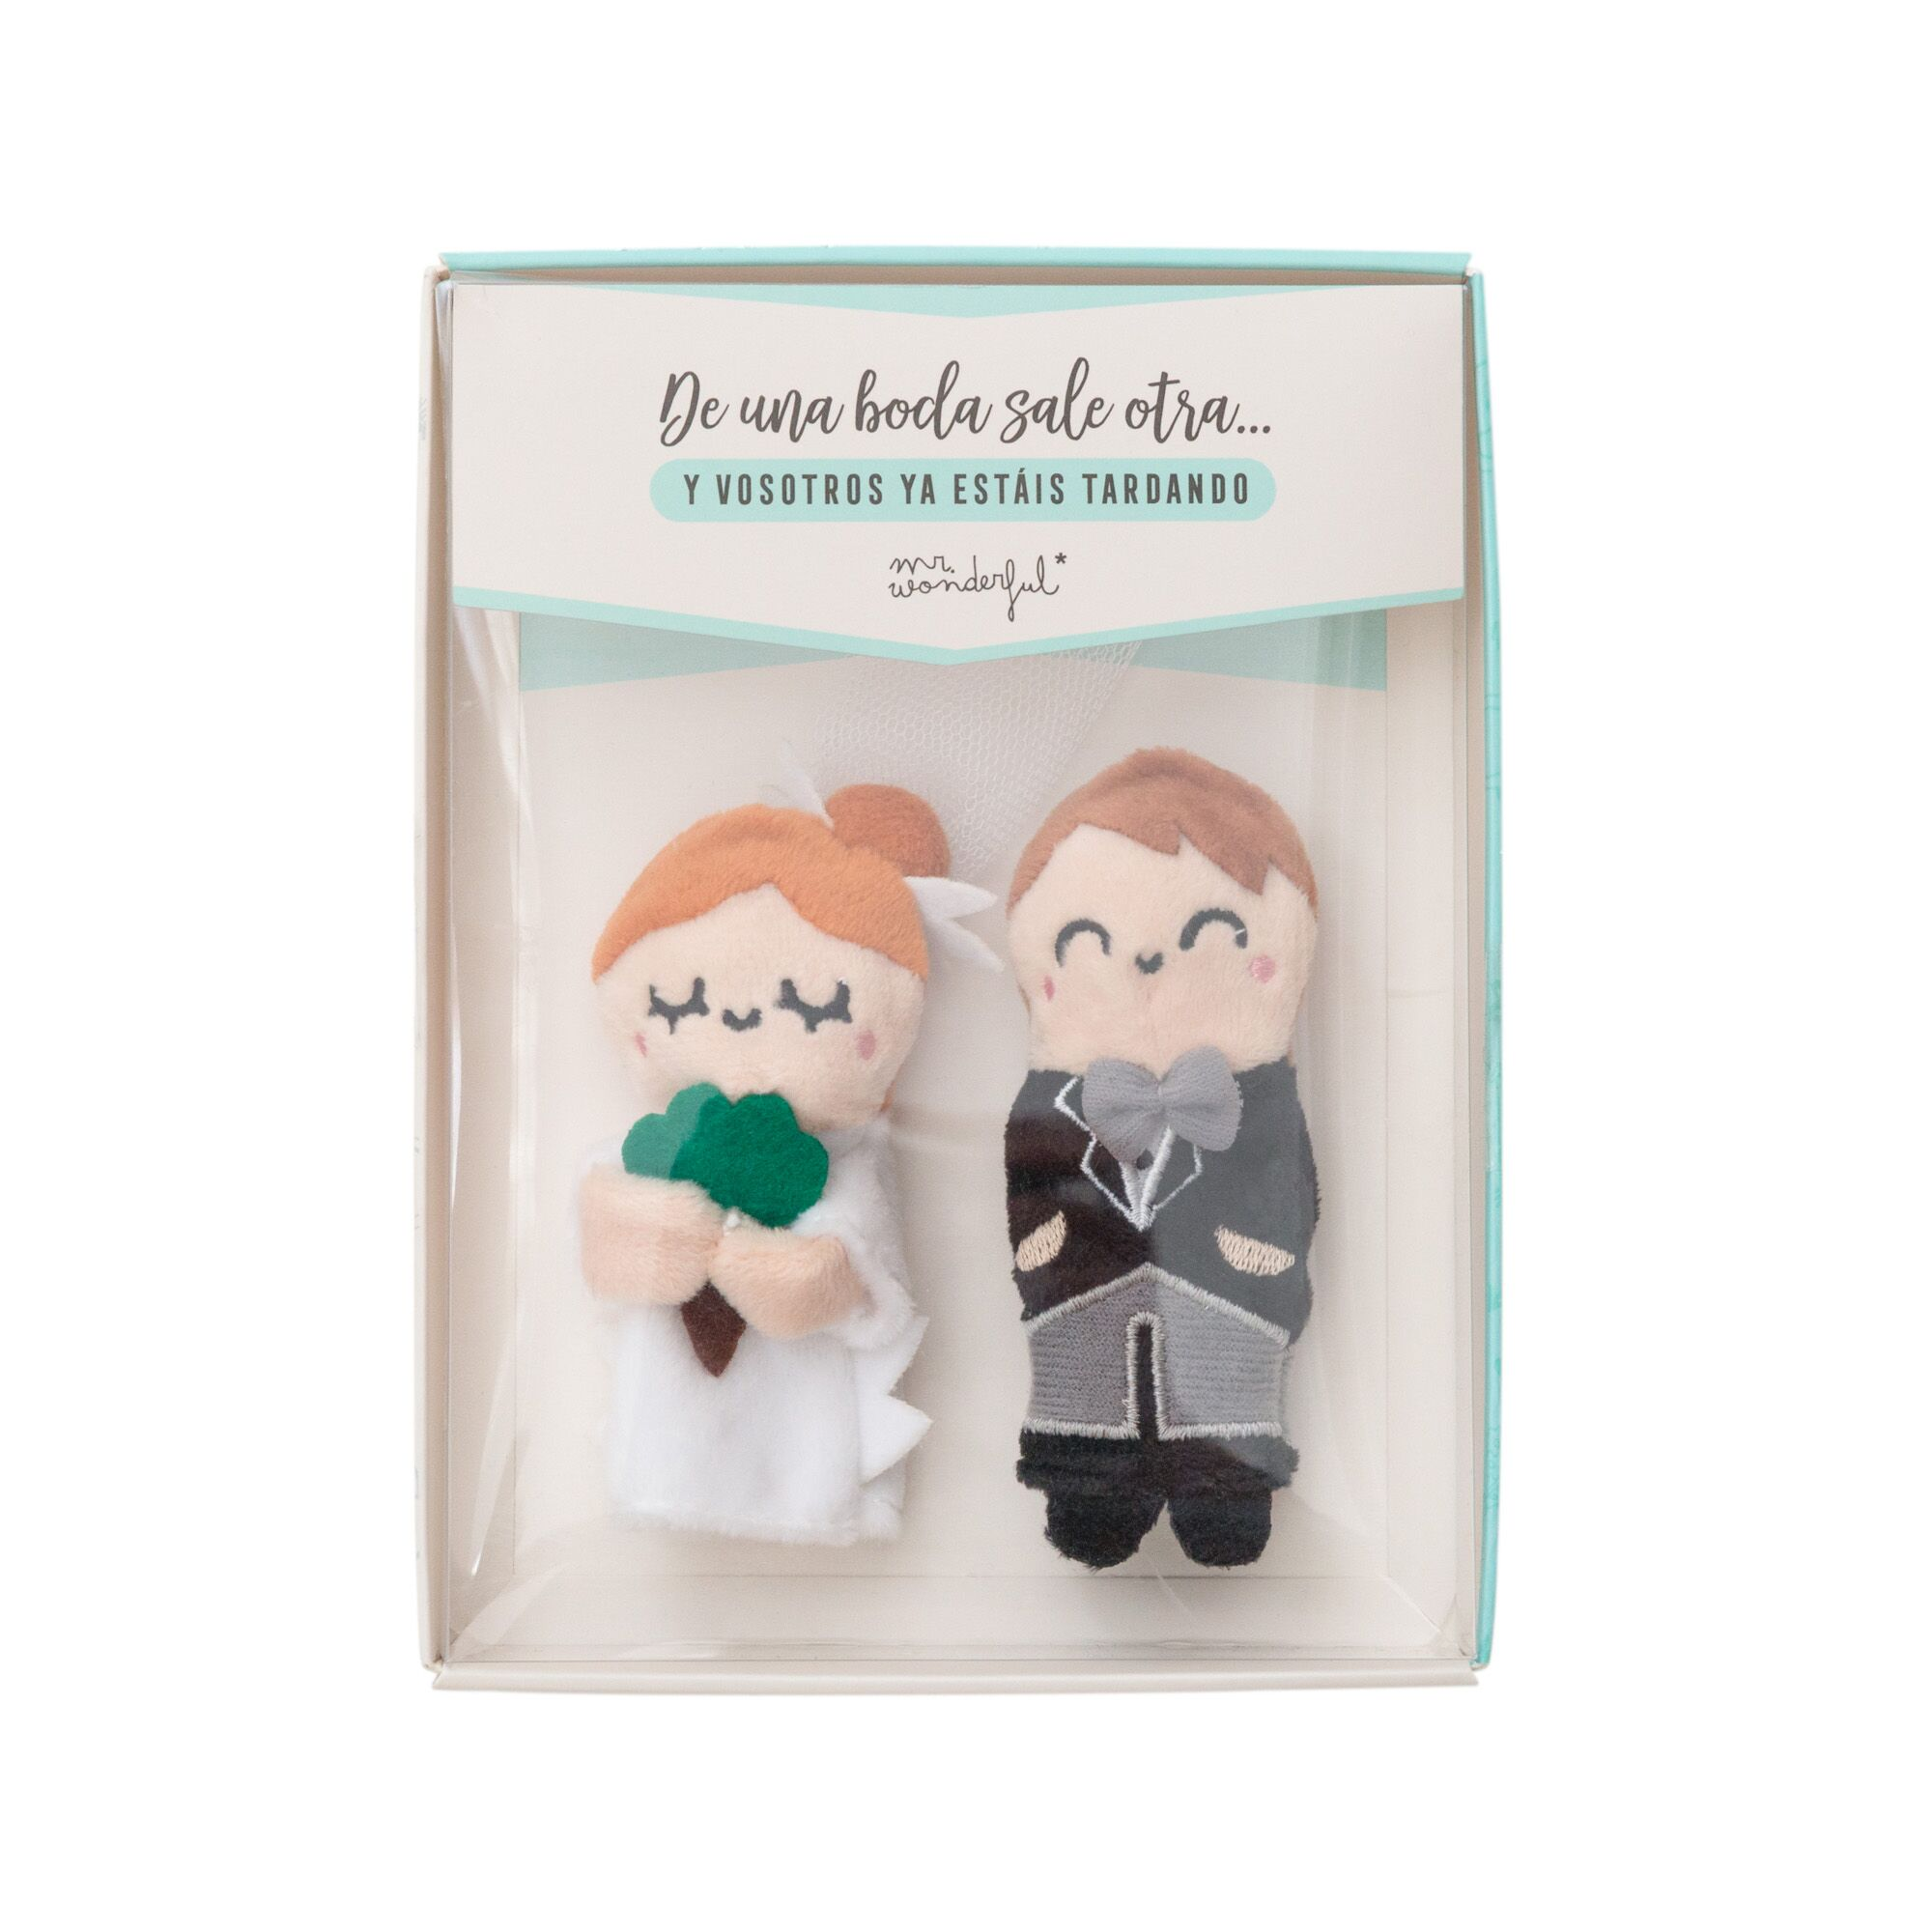 Marionetas de novios Mr wonderful